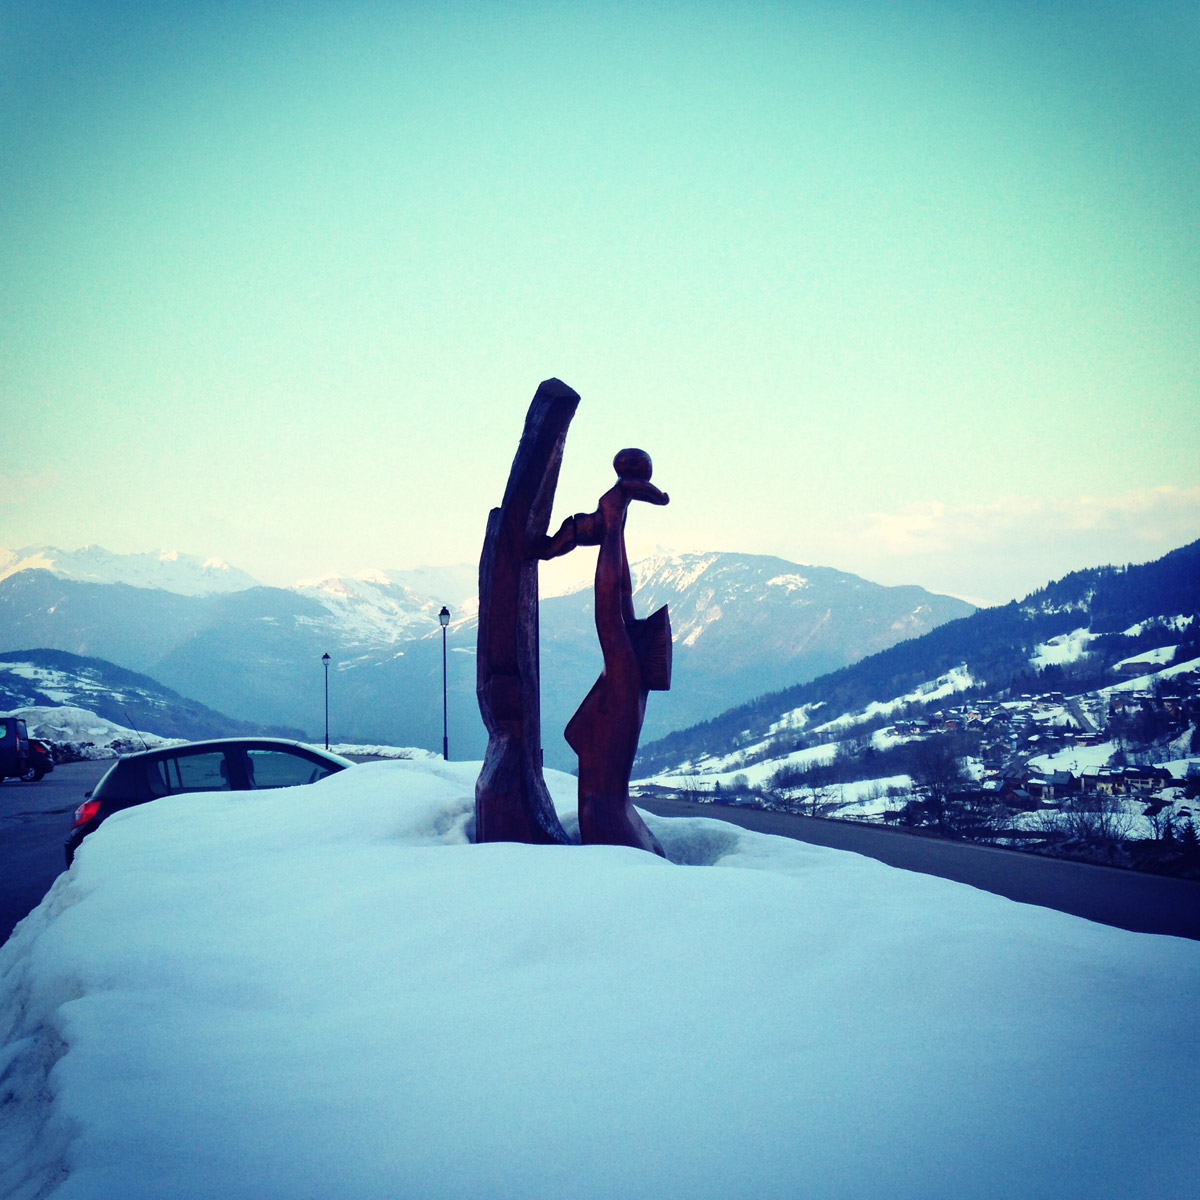 Club Med Valmorel - Beautiful Statues